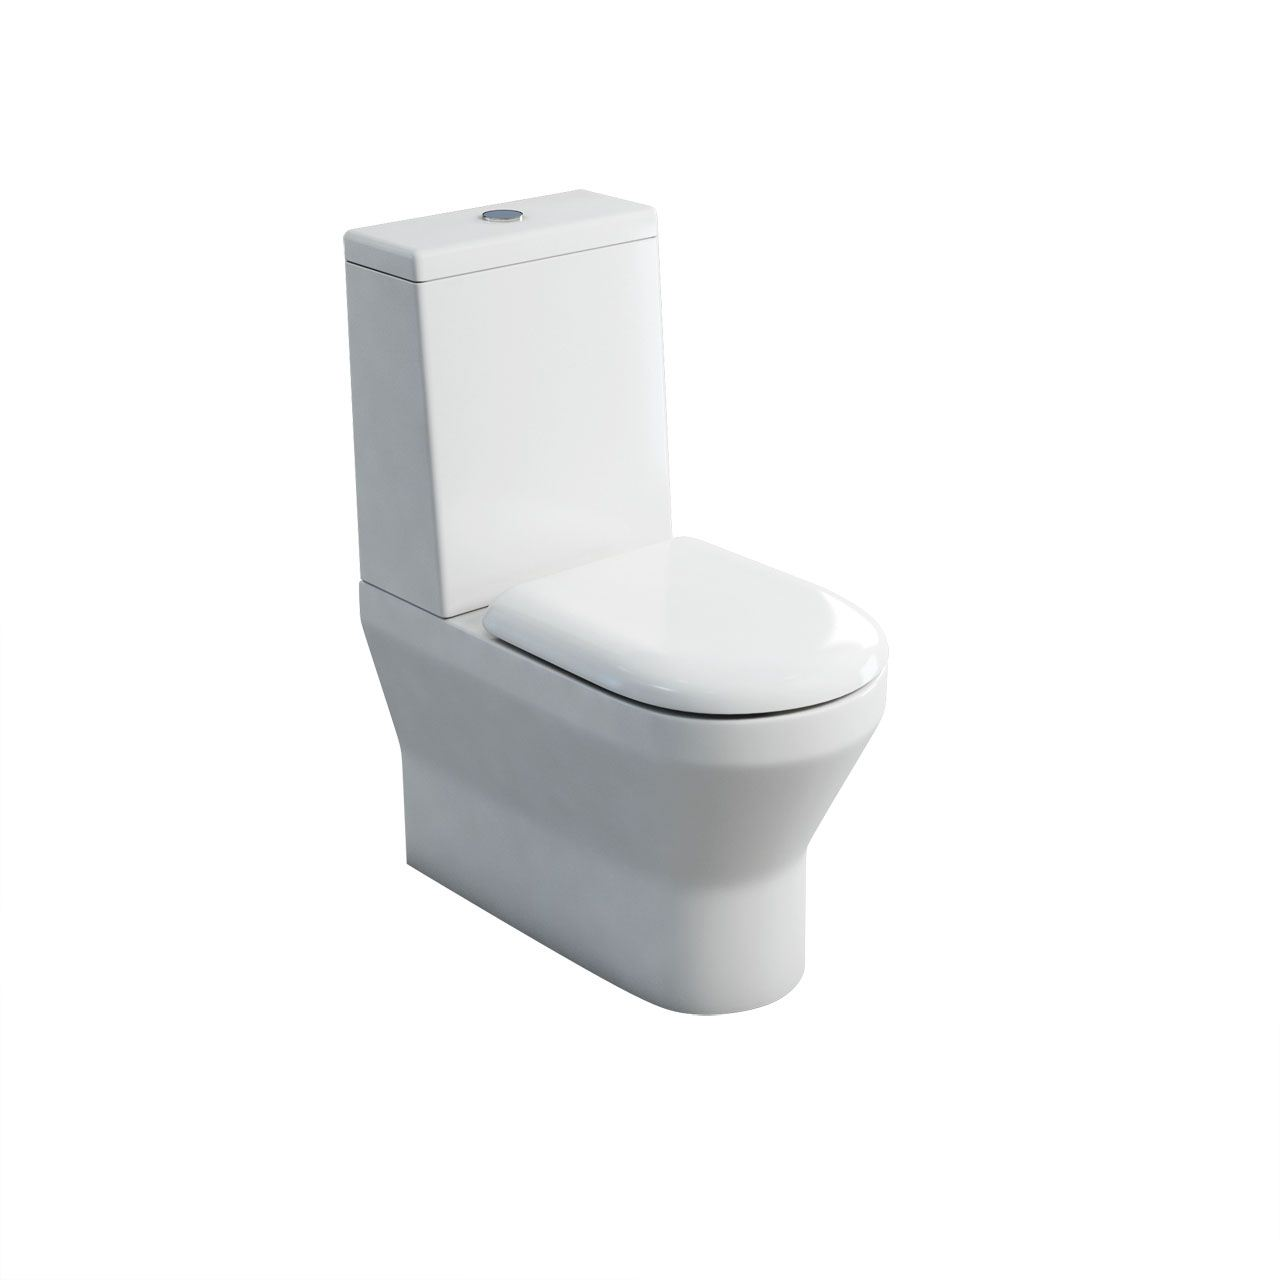 Britton Curve S30 Close Coupled Wc Back To Wall With